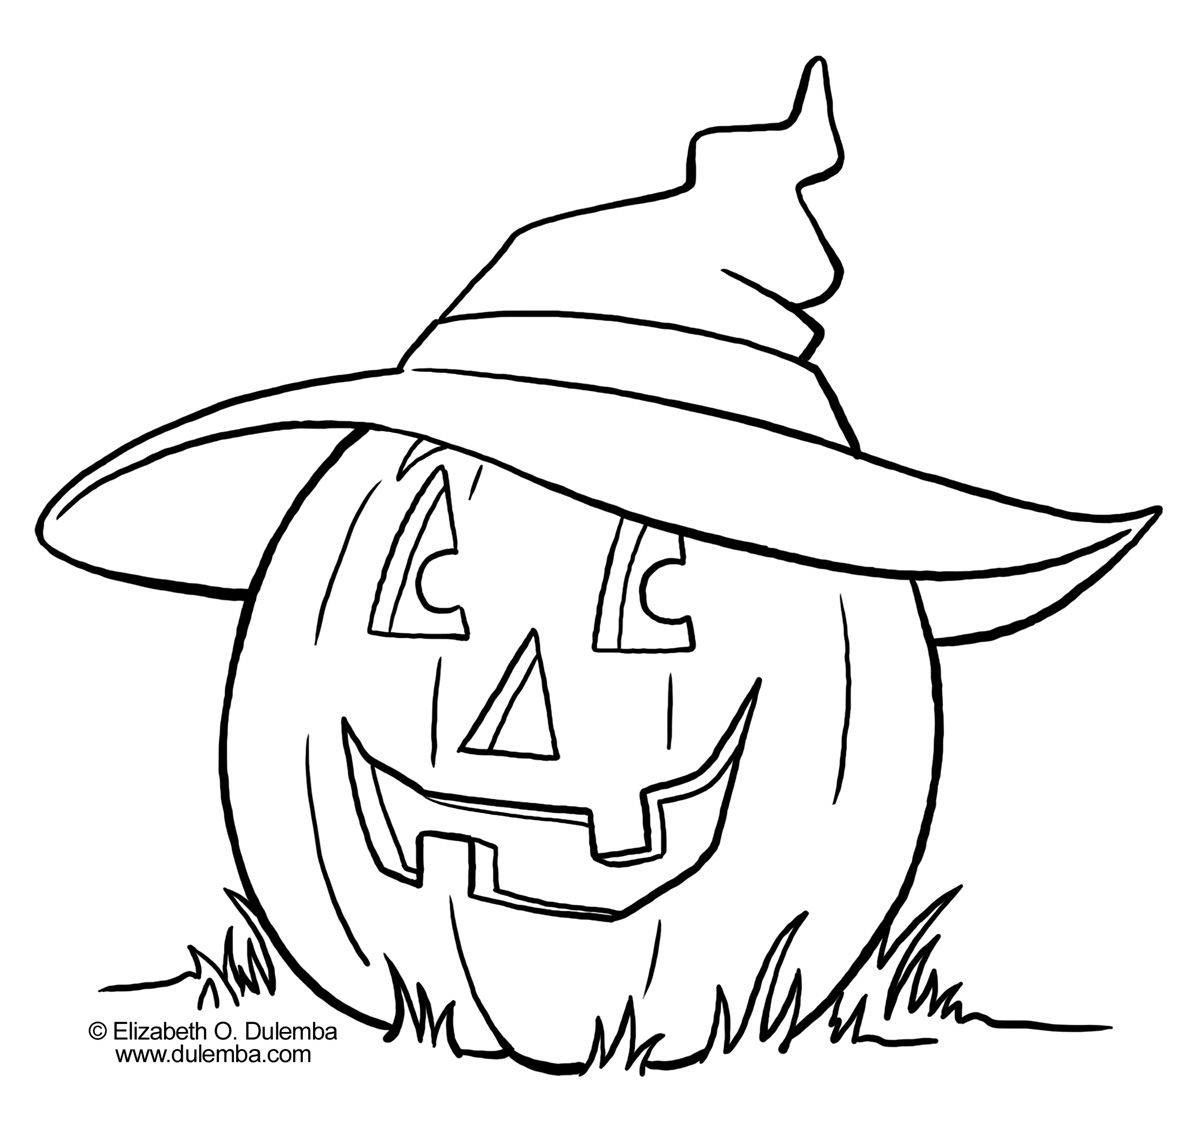 Coloring Pages: Pumpkin Coloring Pages Collections 2011